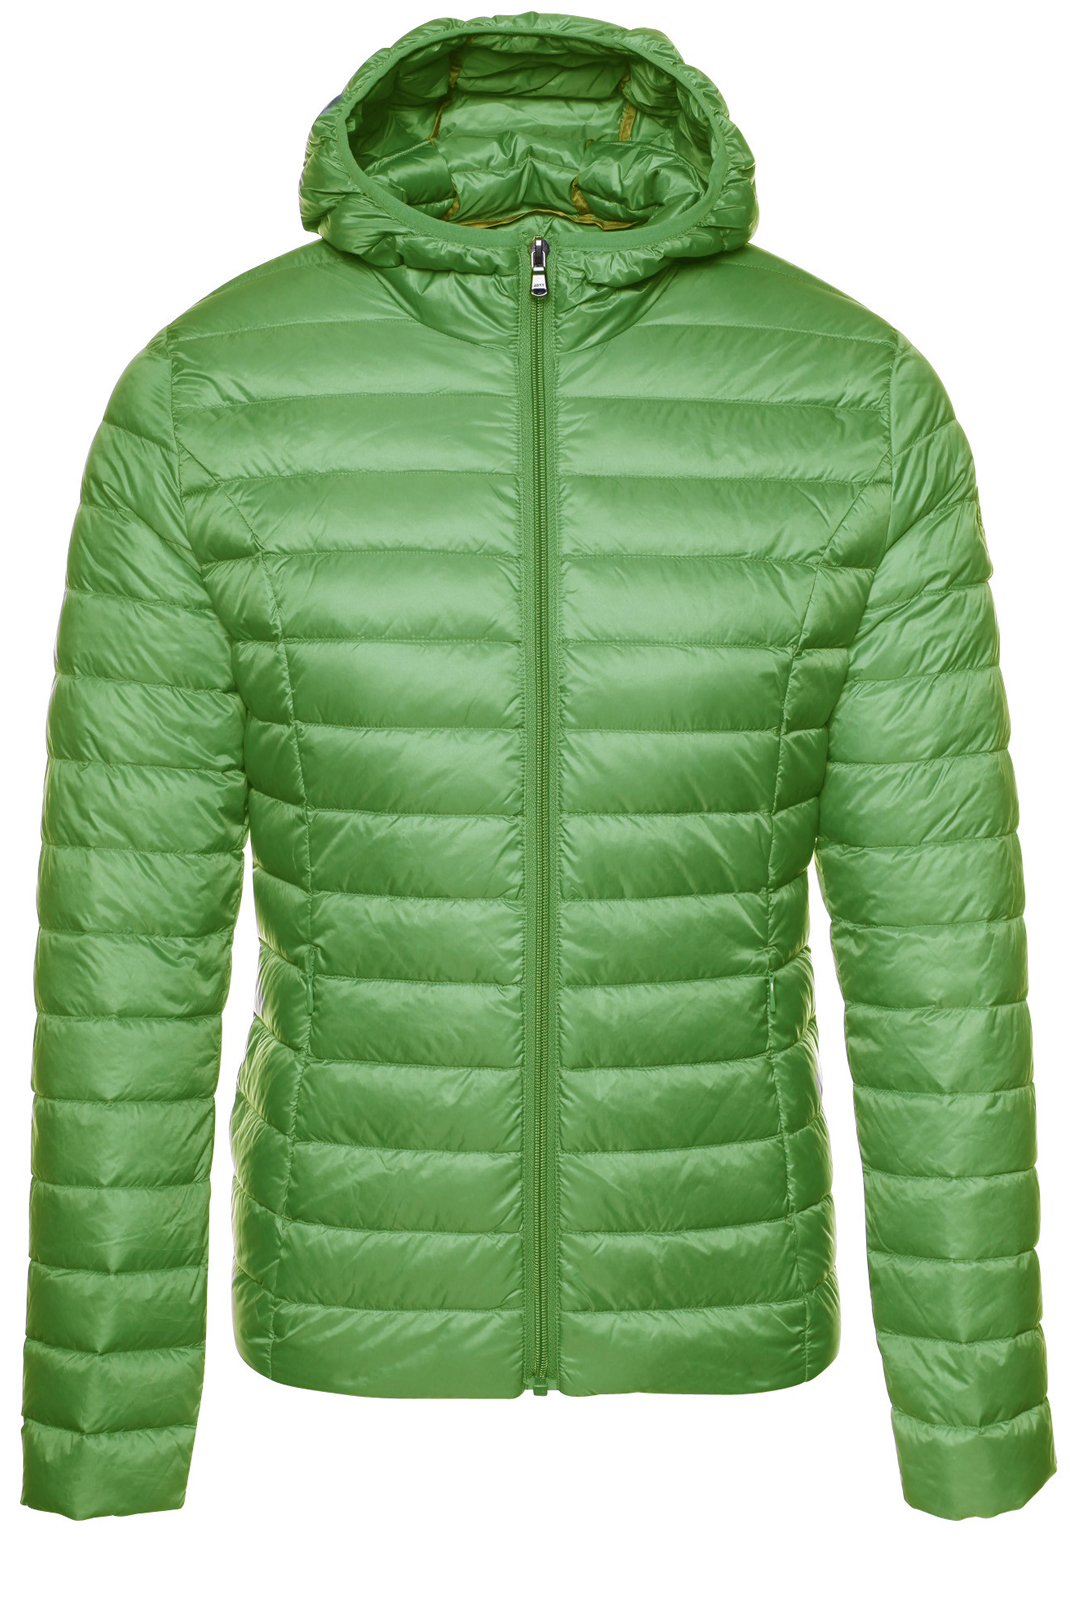 Blouson / doudoune  Just over the top CLOE 200 GREEN